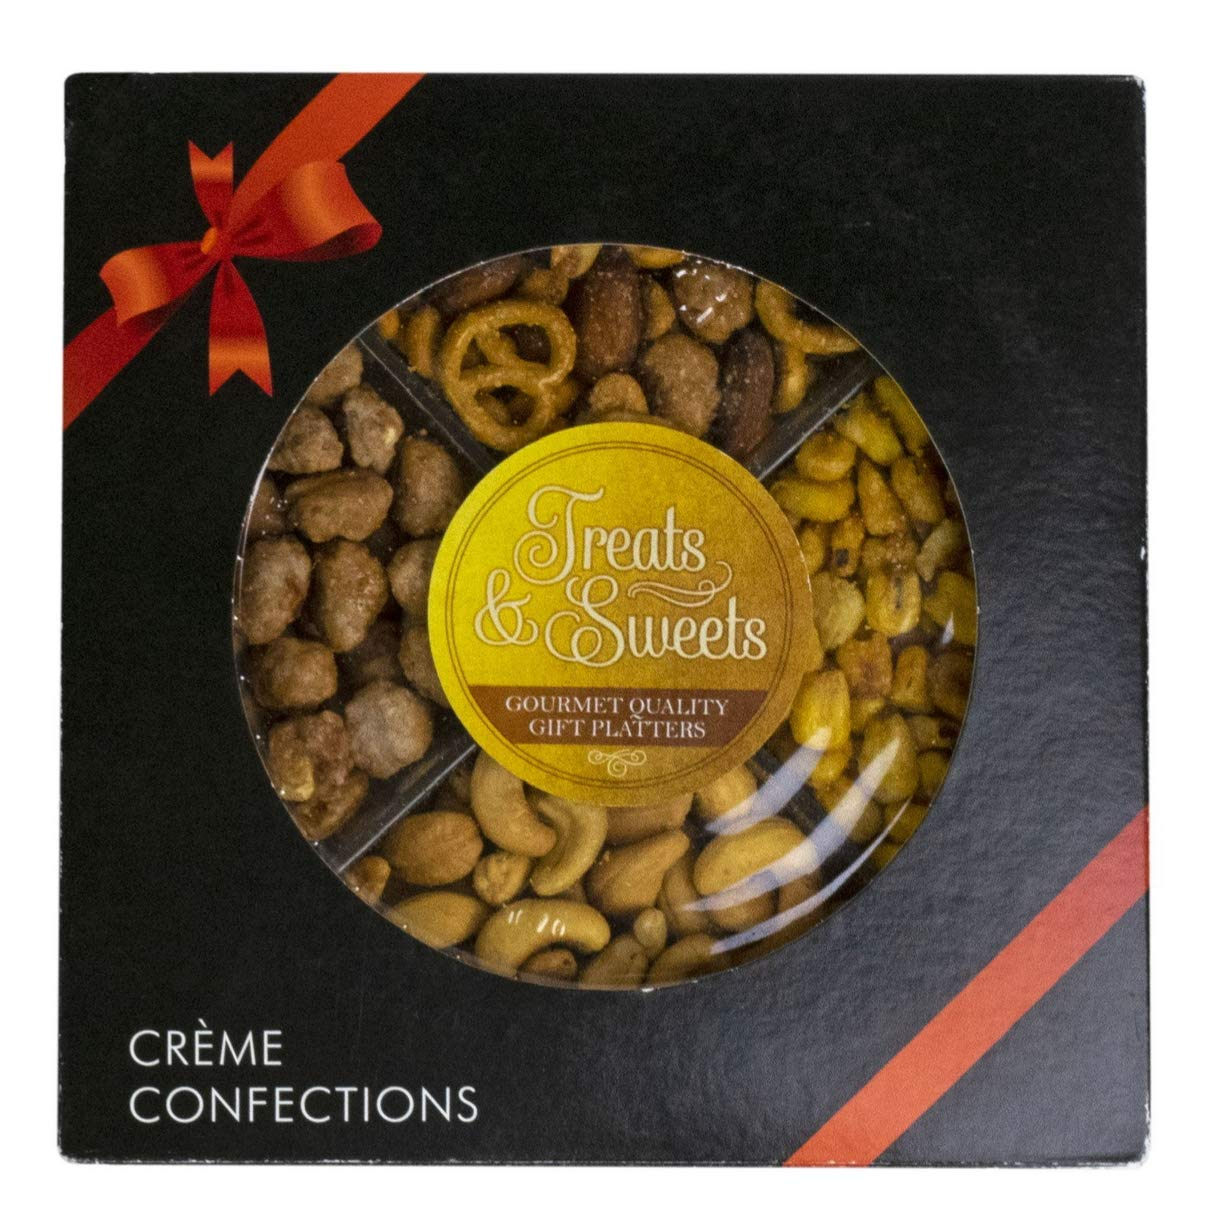 Gourmet Nut Tray ForShalach Manos, Assorted Nuts Purim Gift Basket With Bow - Includes Roasted Salted Cashews, Toffee Peanuts, Sweet and Savory Party Mix, Roasted Perfect ForMishloach Manot Basket